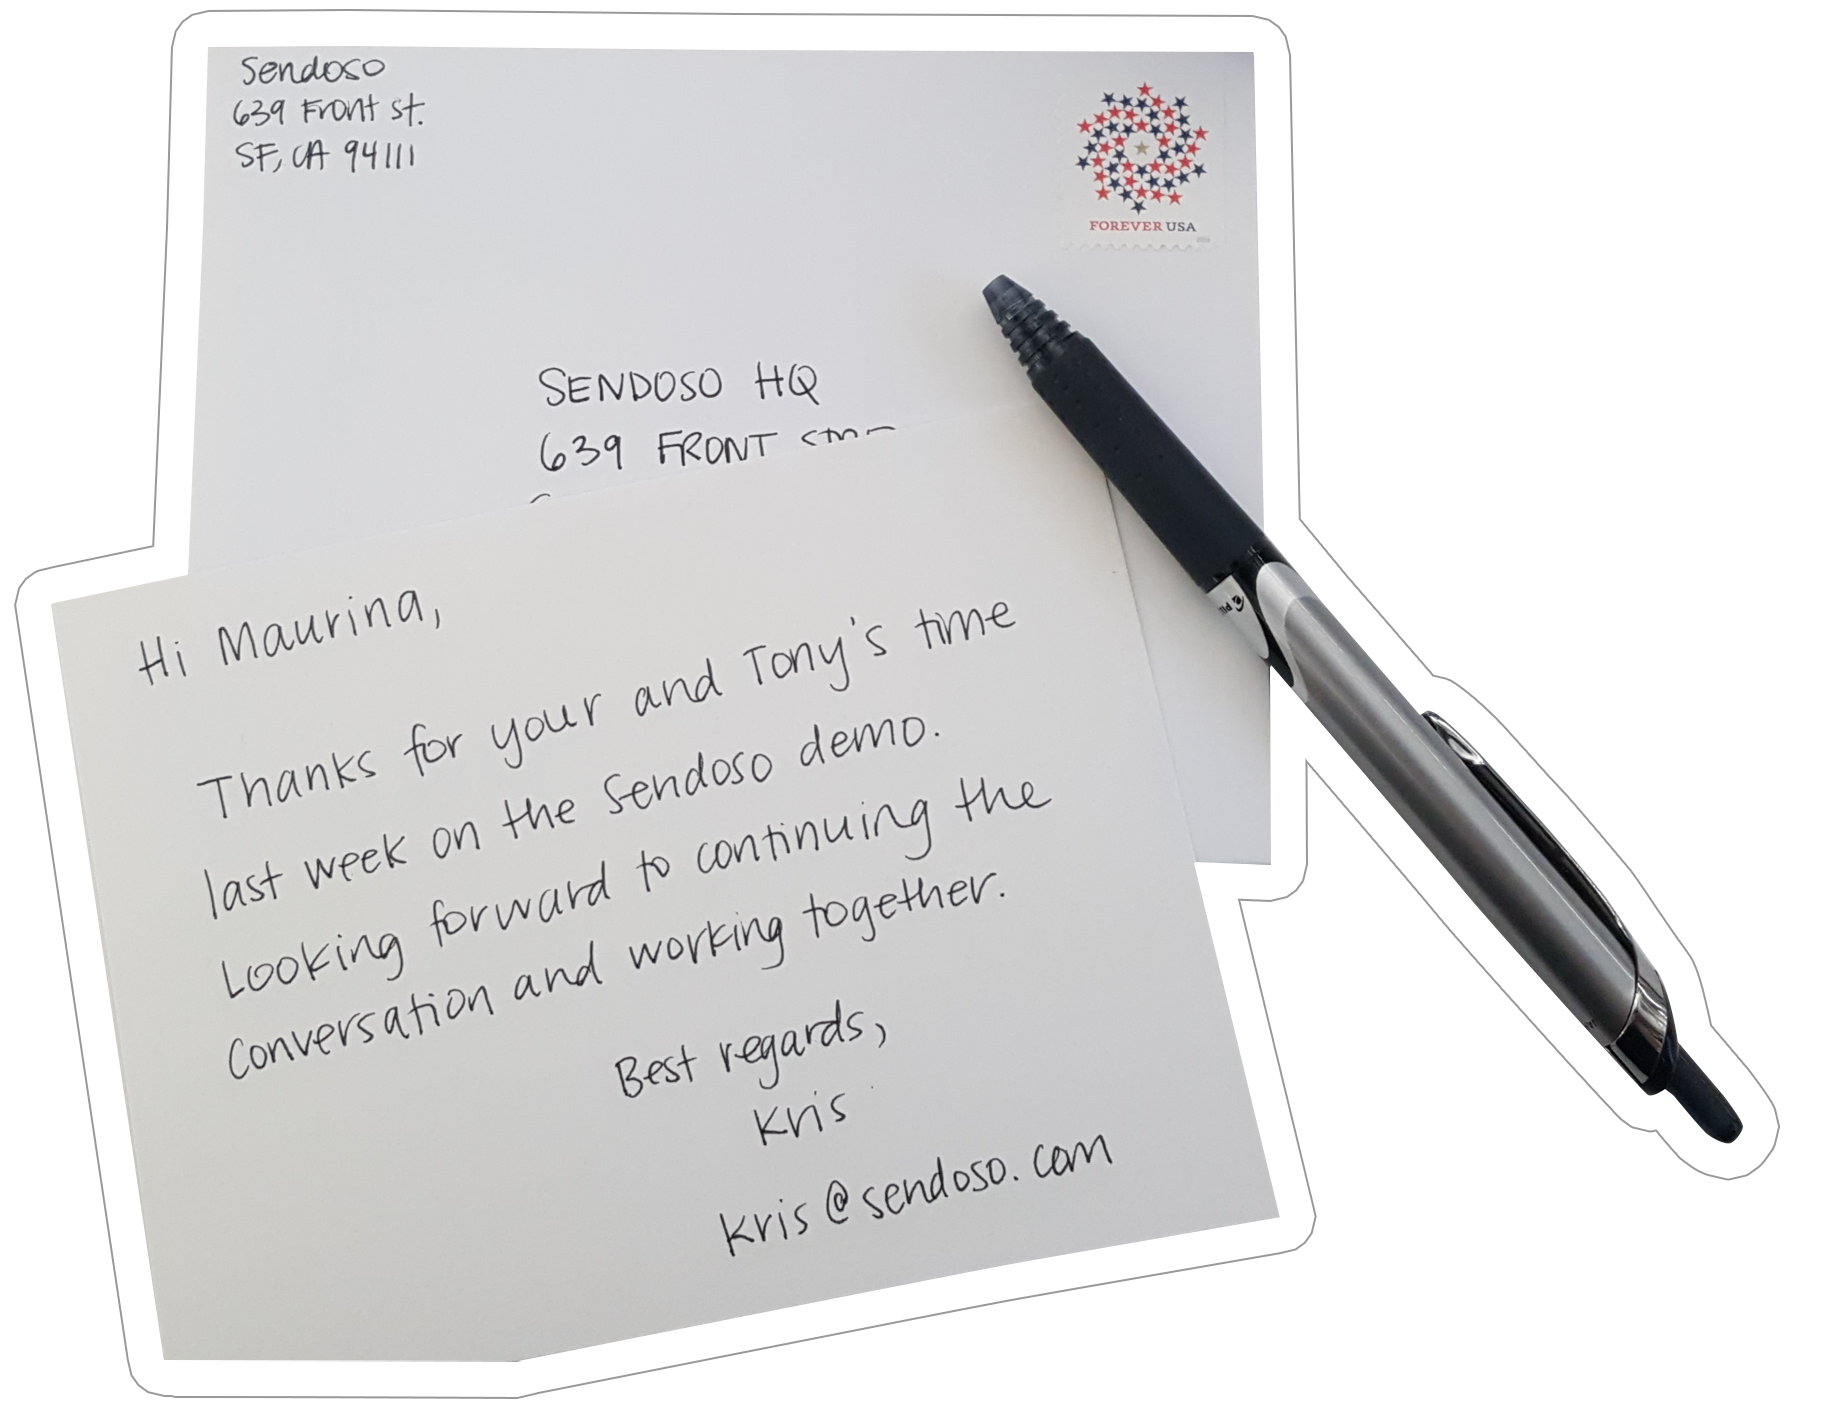 example-handwritten-note-1.png#asset:4980